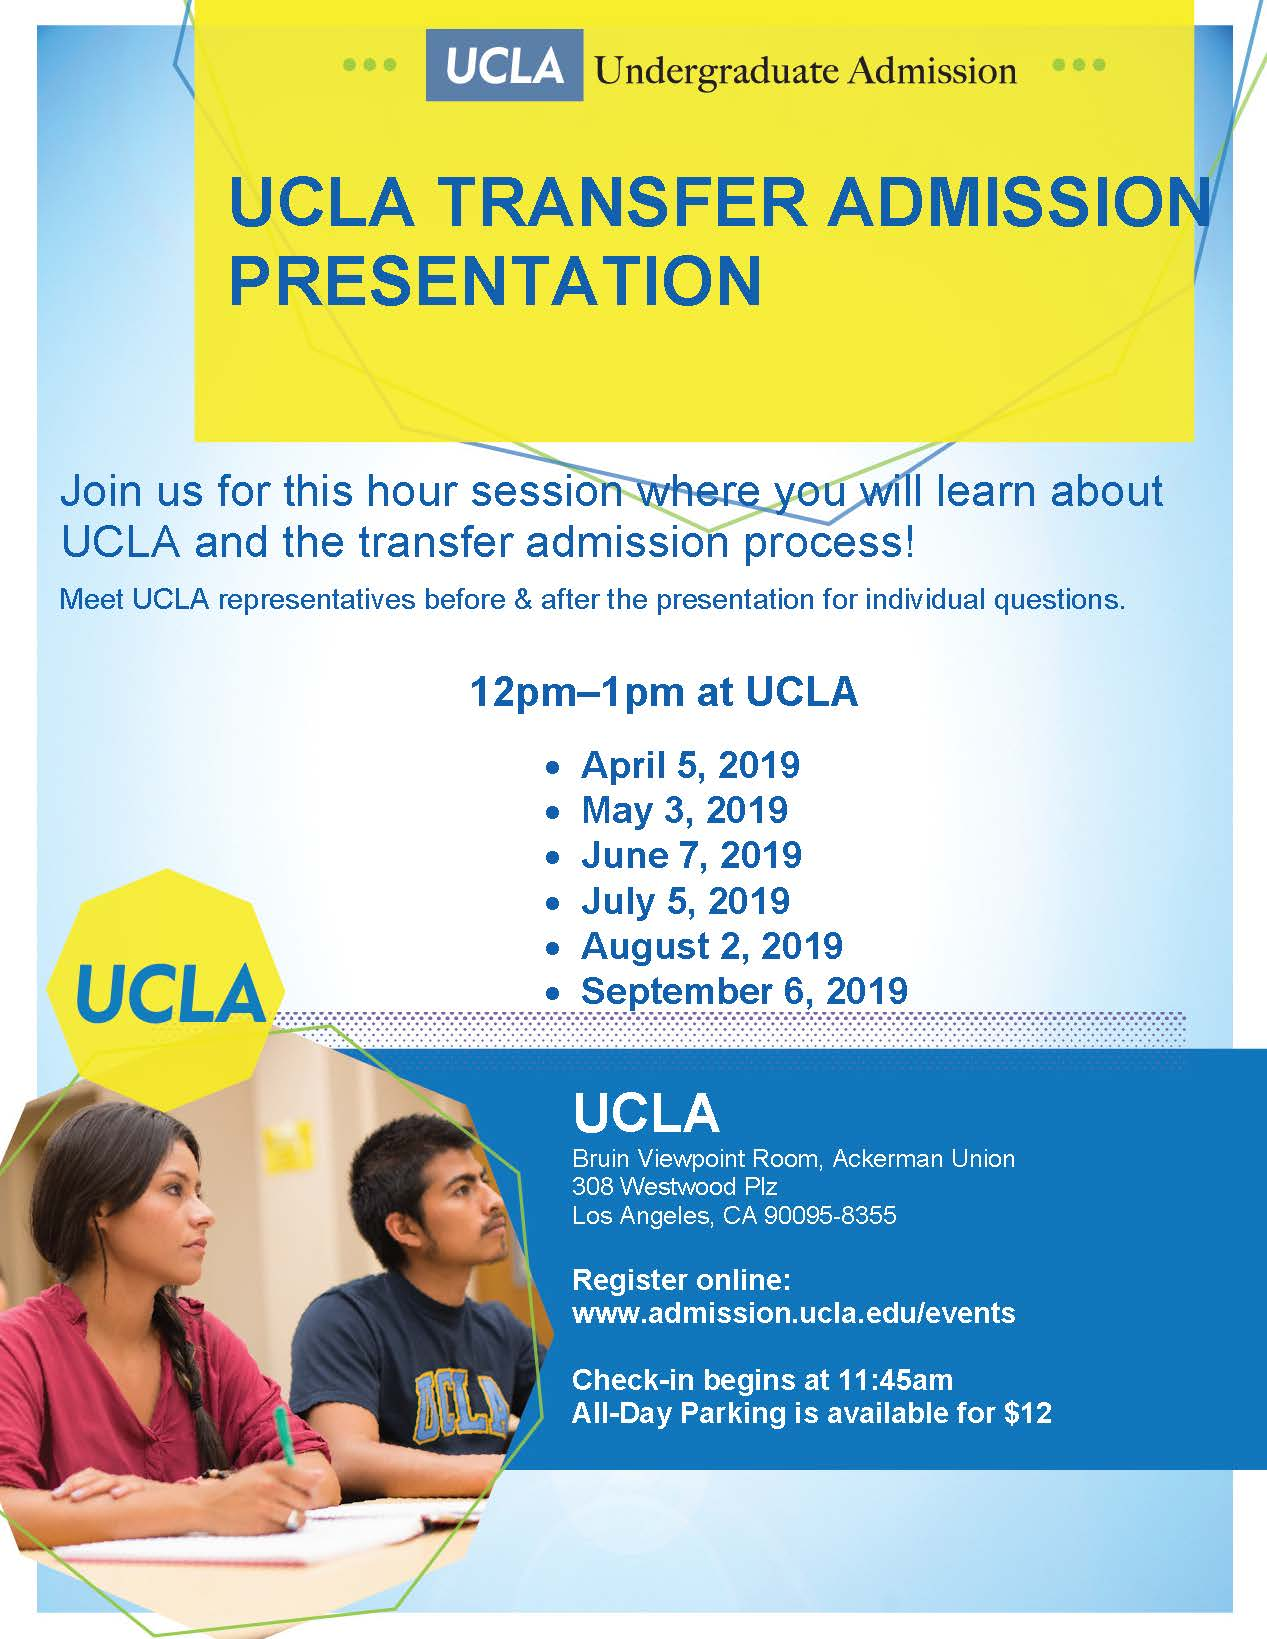 flyer for UCLA transfer presentation